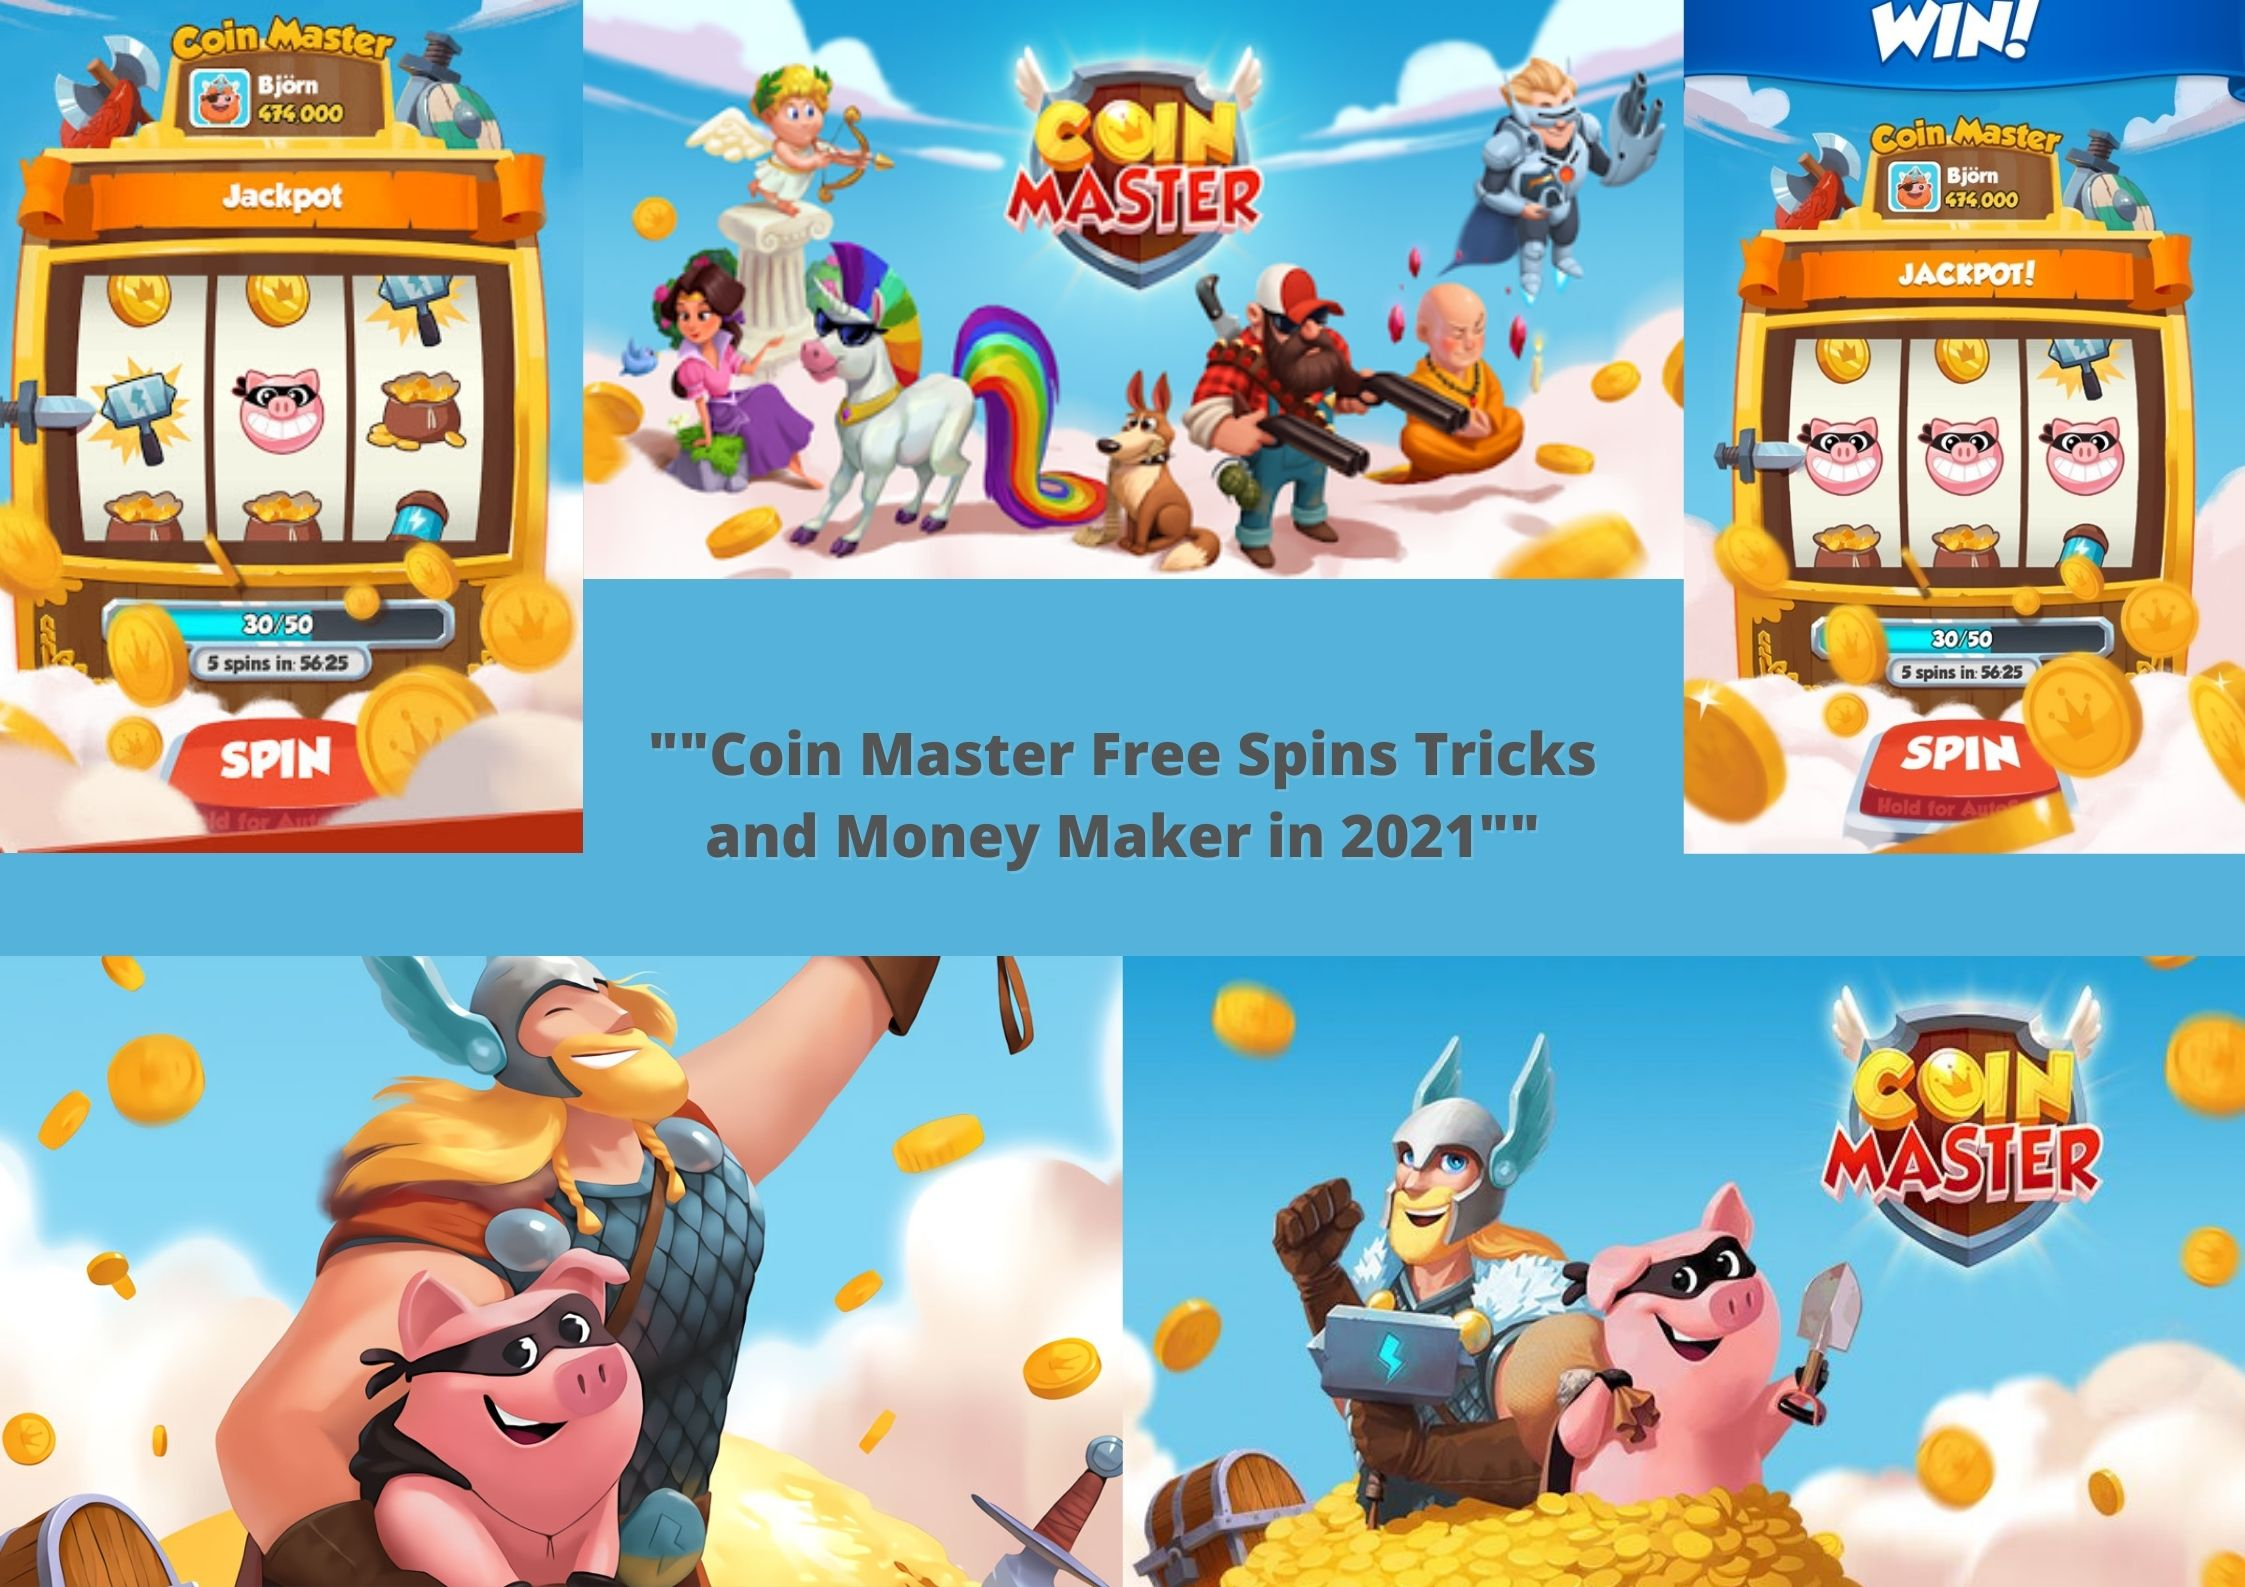 Coin Master Free Spins Tricks and Coins Saver in 2021